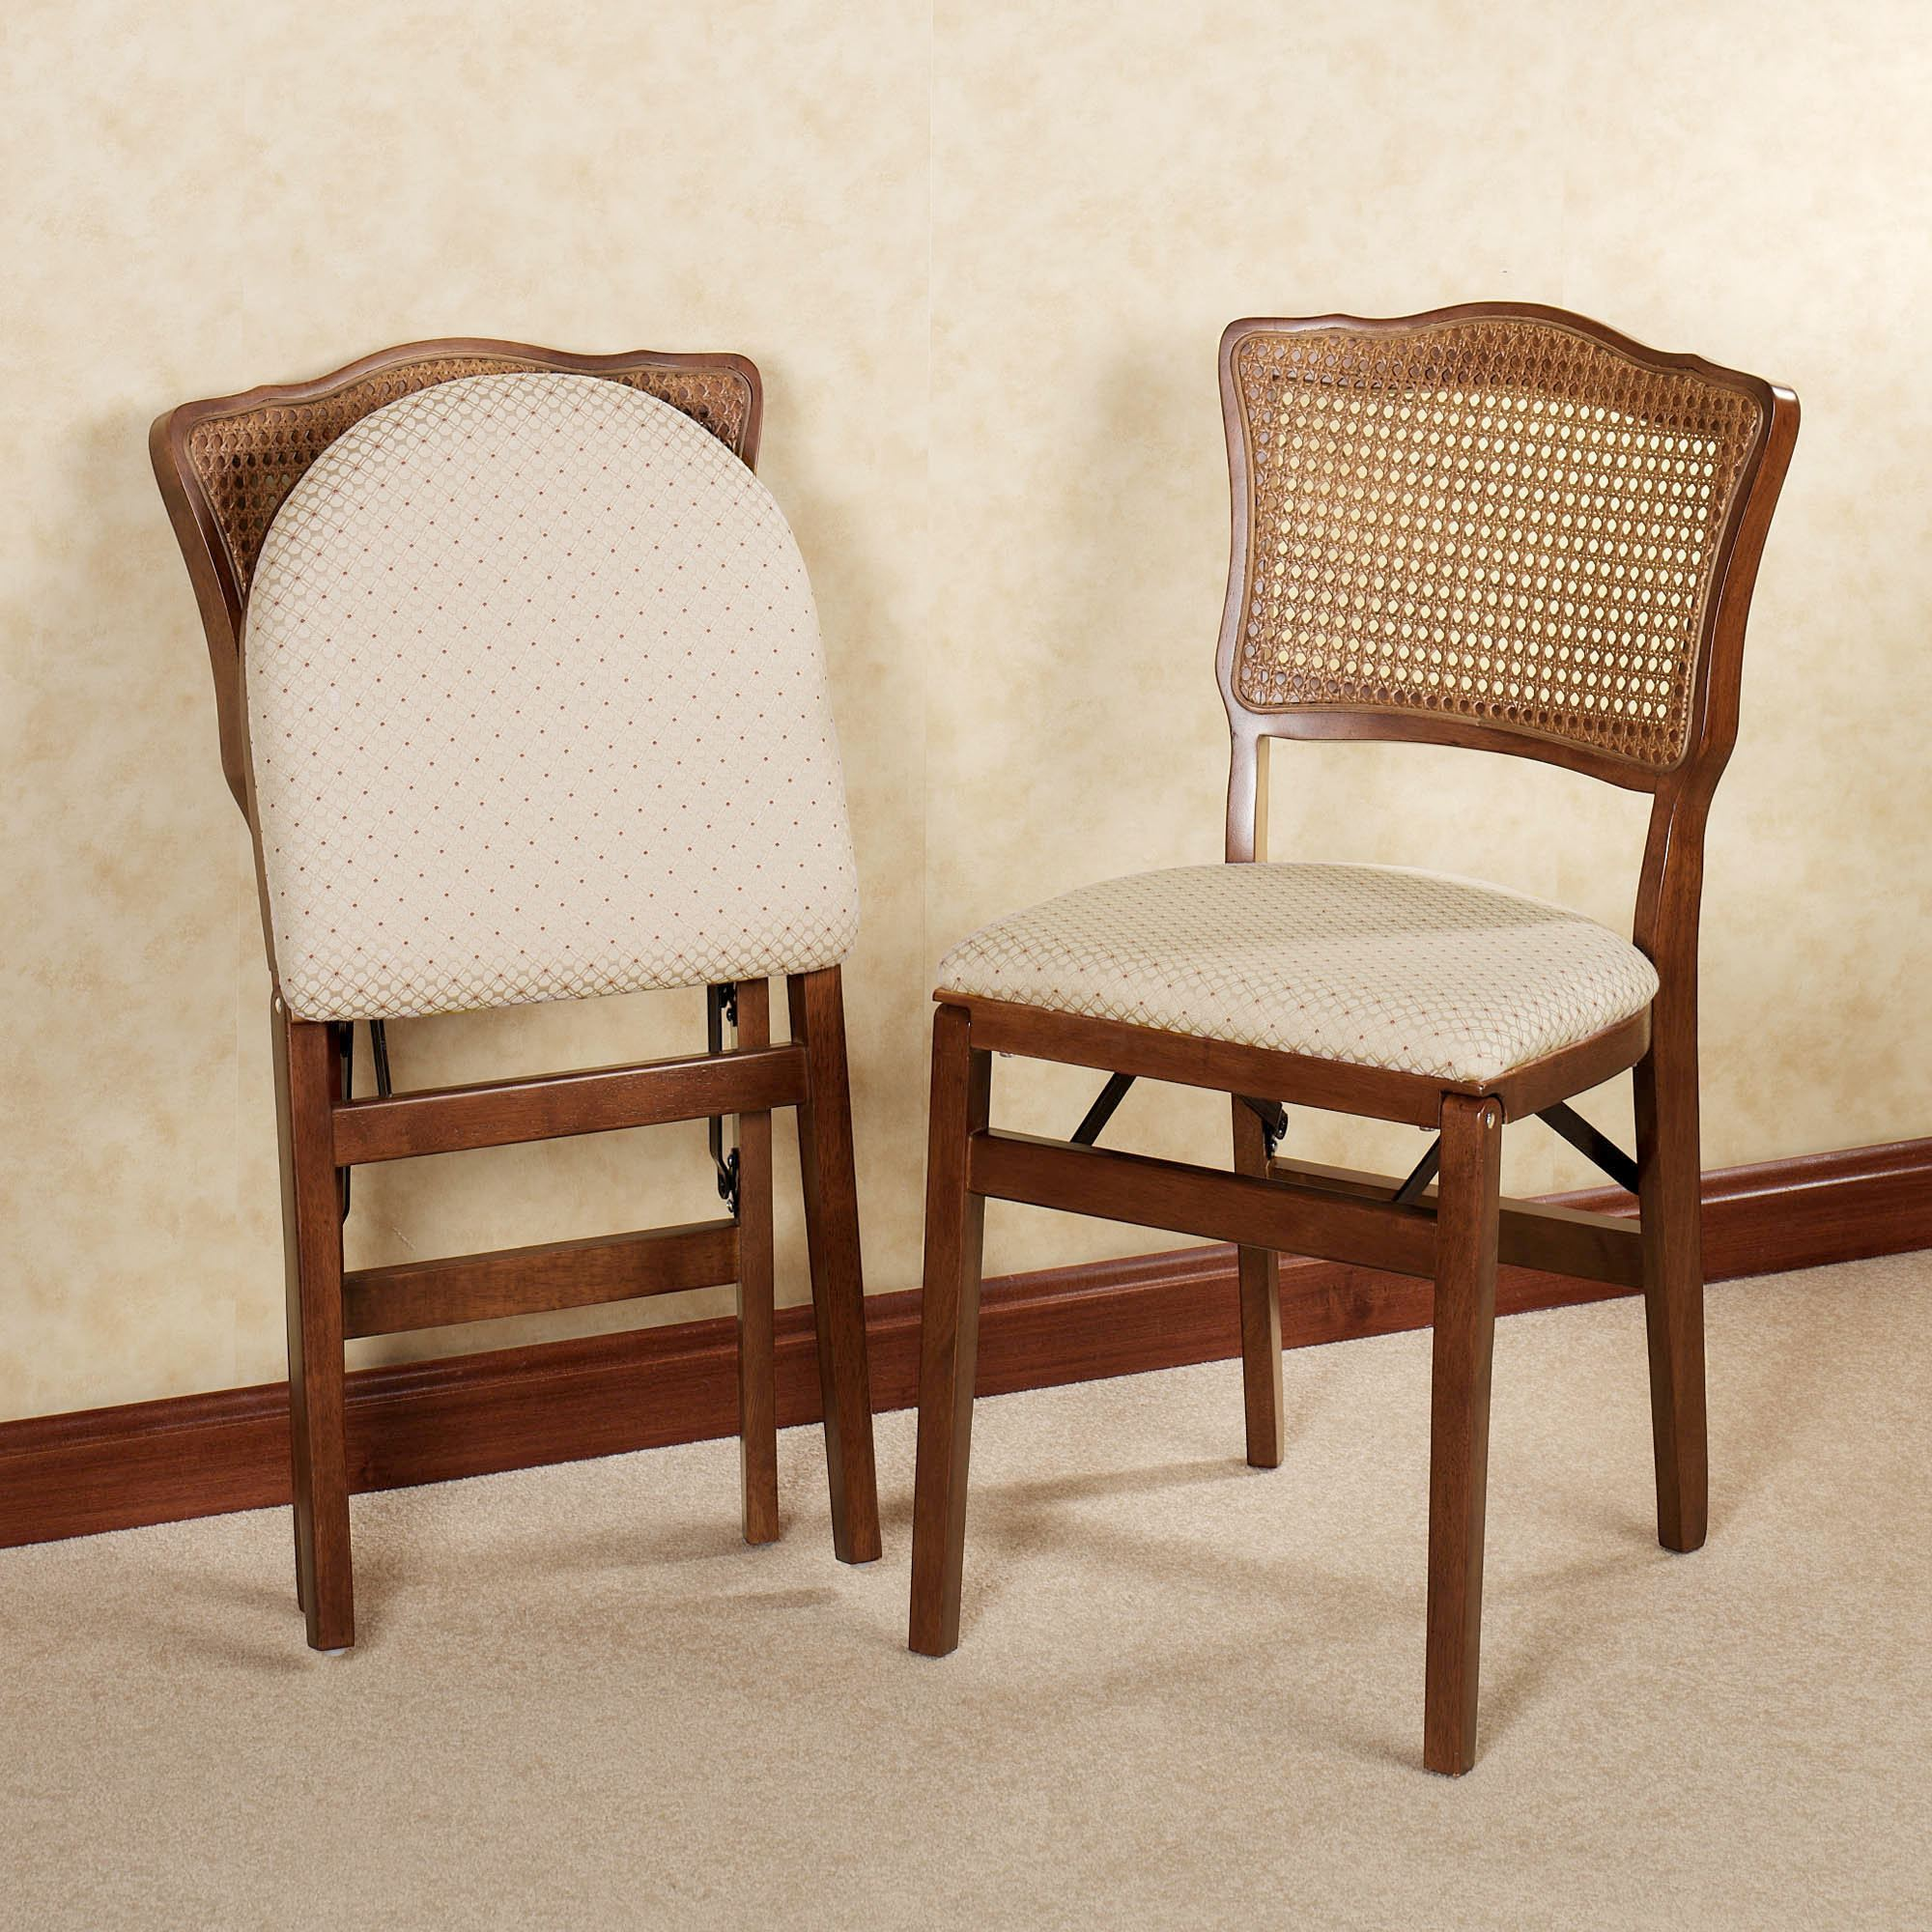 Dover Cane Back Wooden Folding Chair Pair